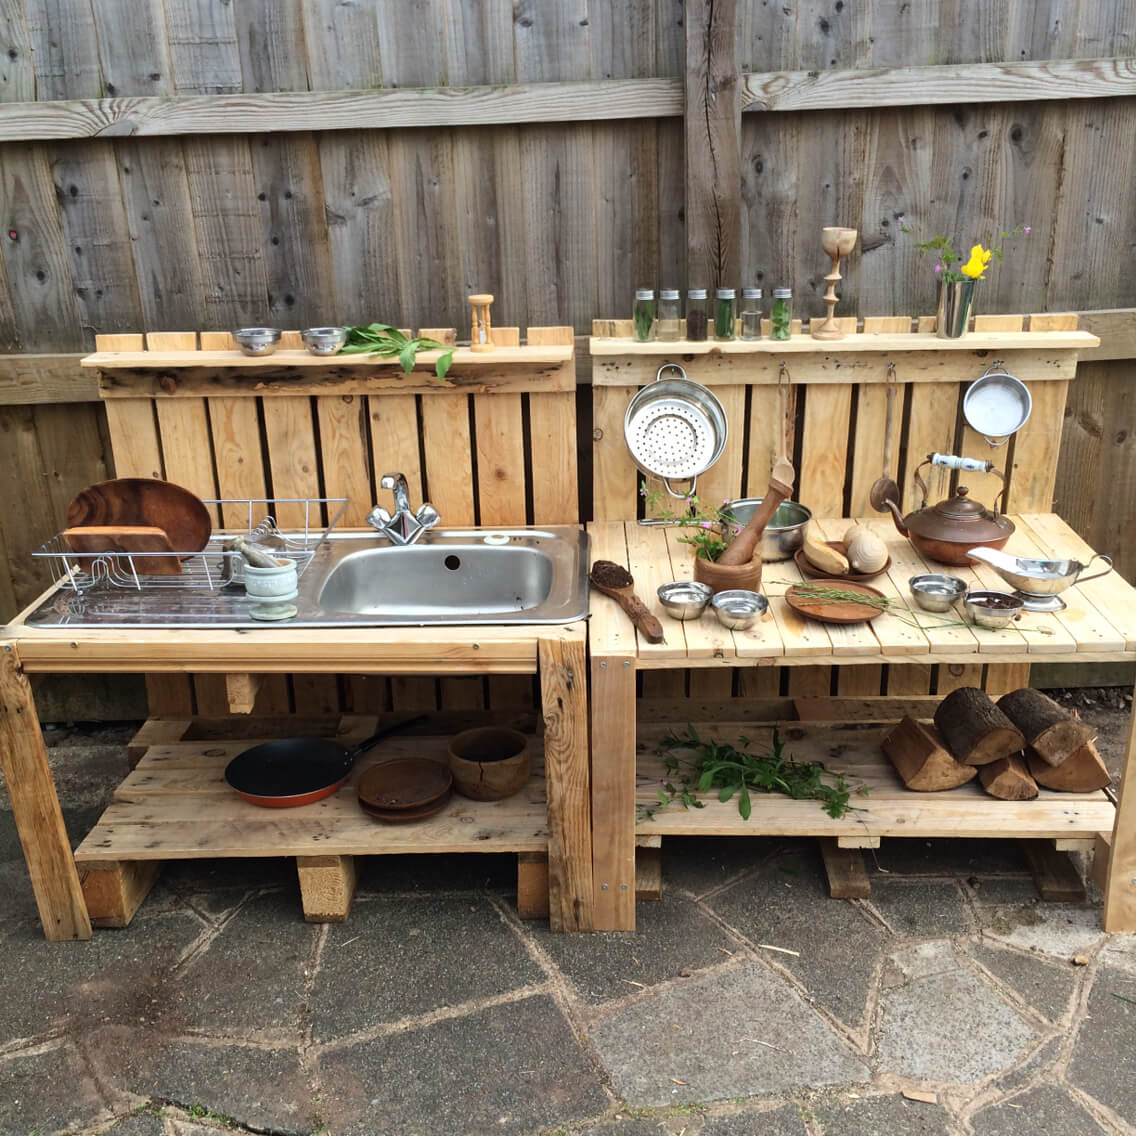 27 Best Outdoor Kitchen Ideas and Designs for 2017 on Diy Backyard Remodel id=12984